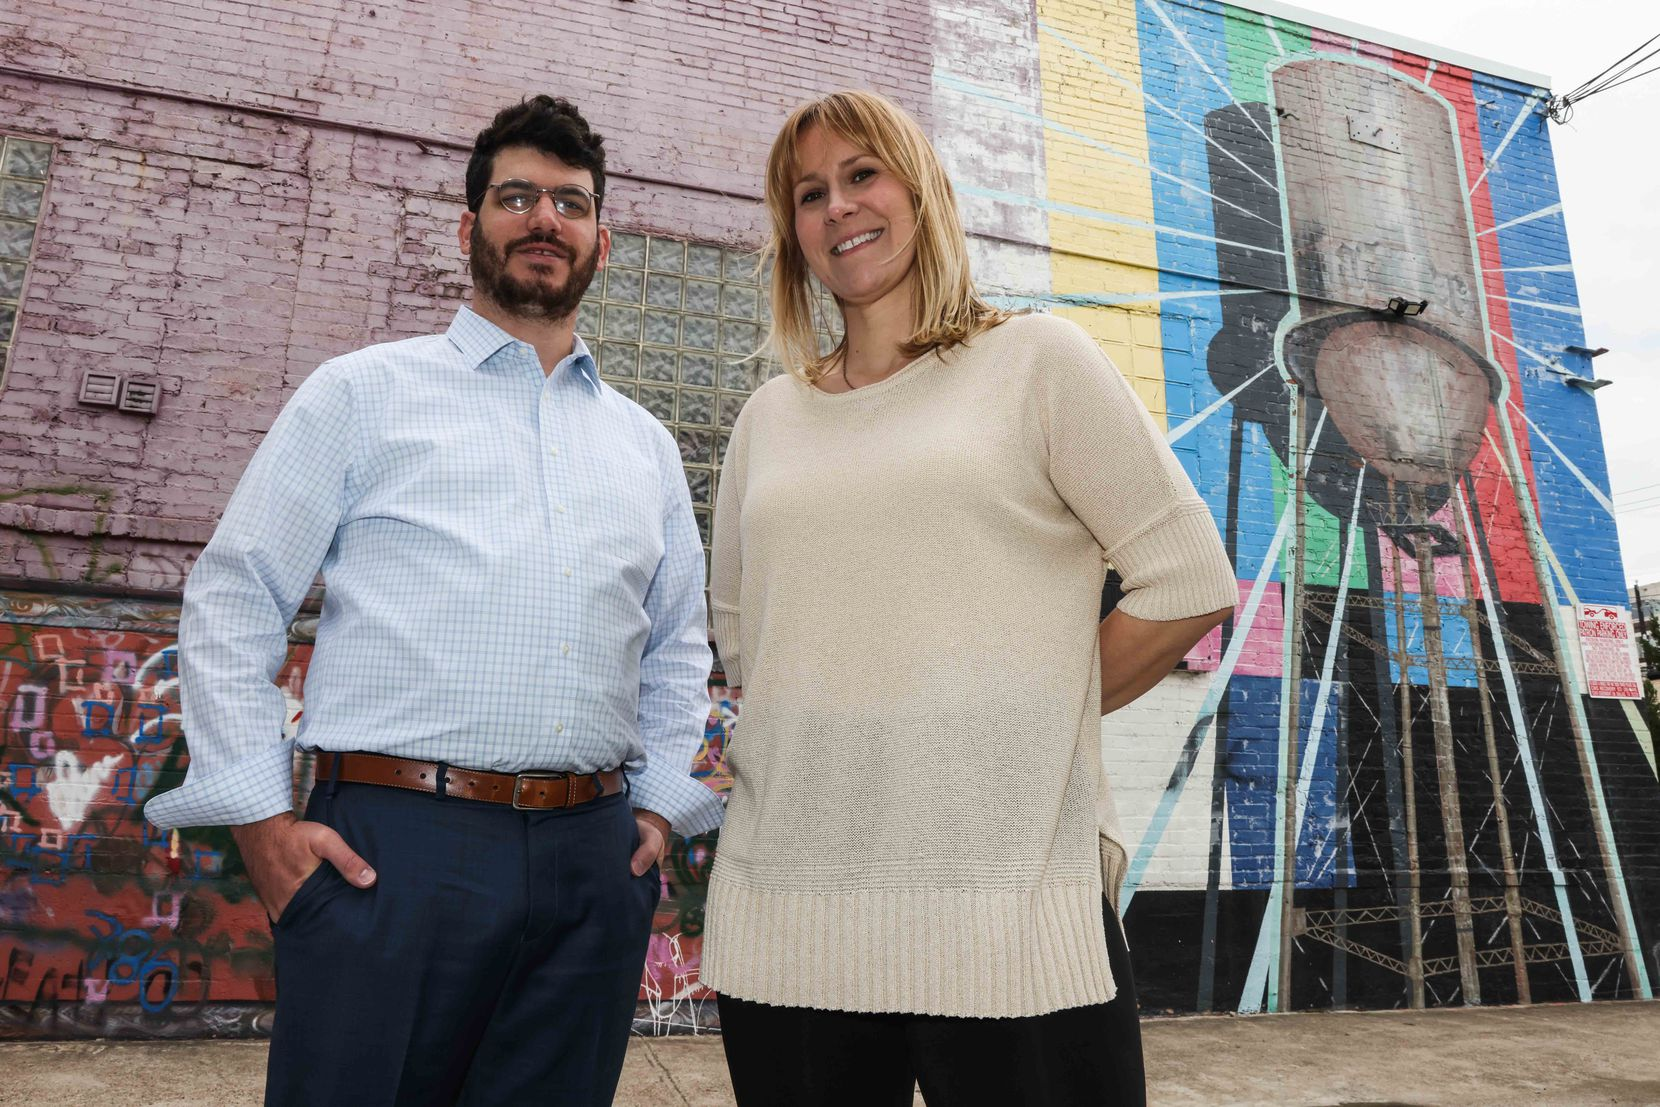 Wil Salisbury and Britt Philyaw from the Heard That Foundation pose together in front of the mural on the corner of Hall and Clover Streets in Deep Ellum.